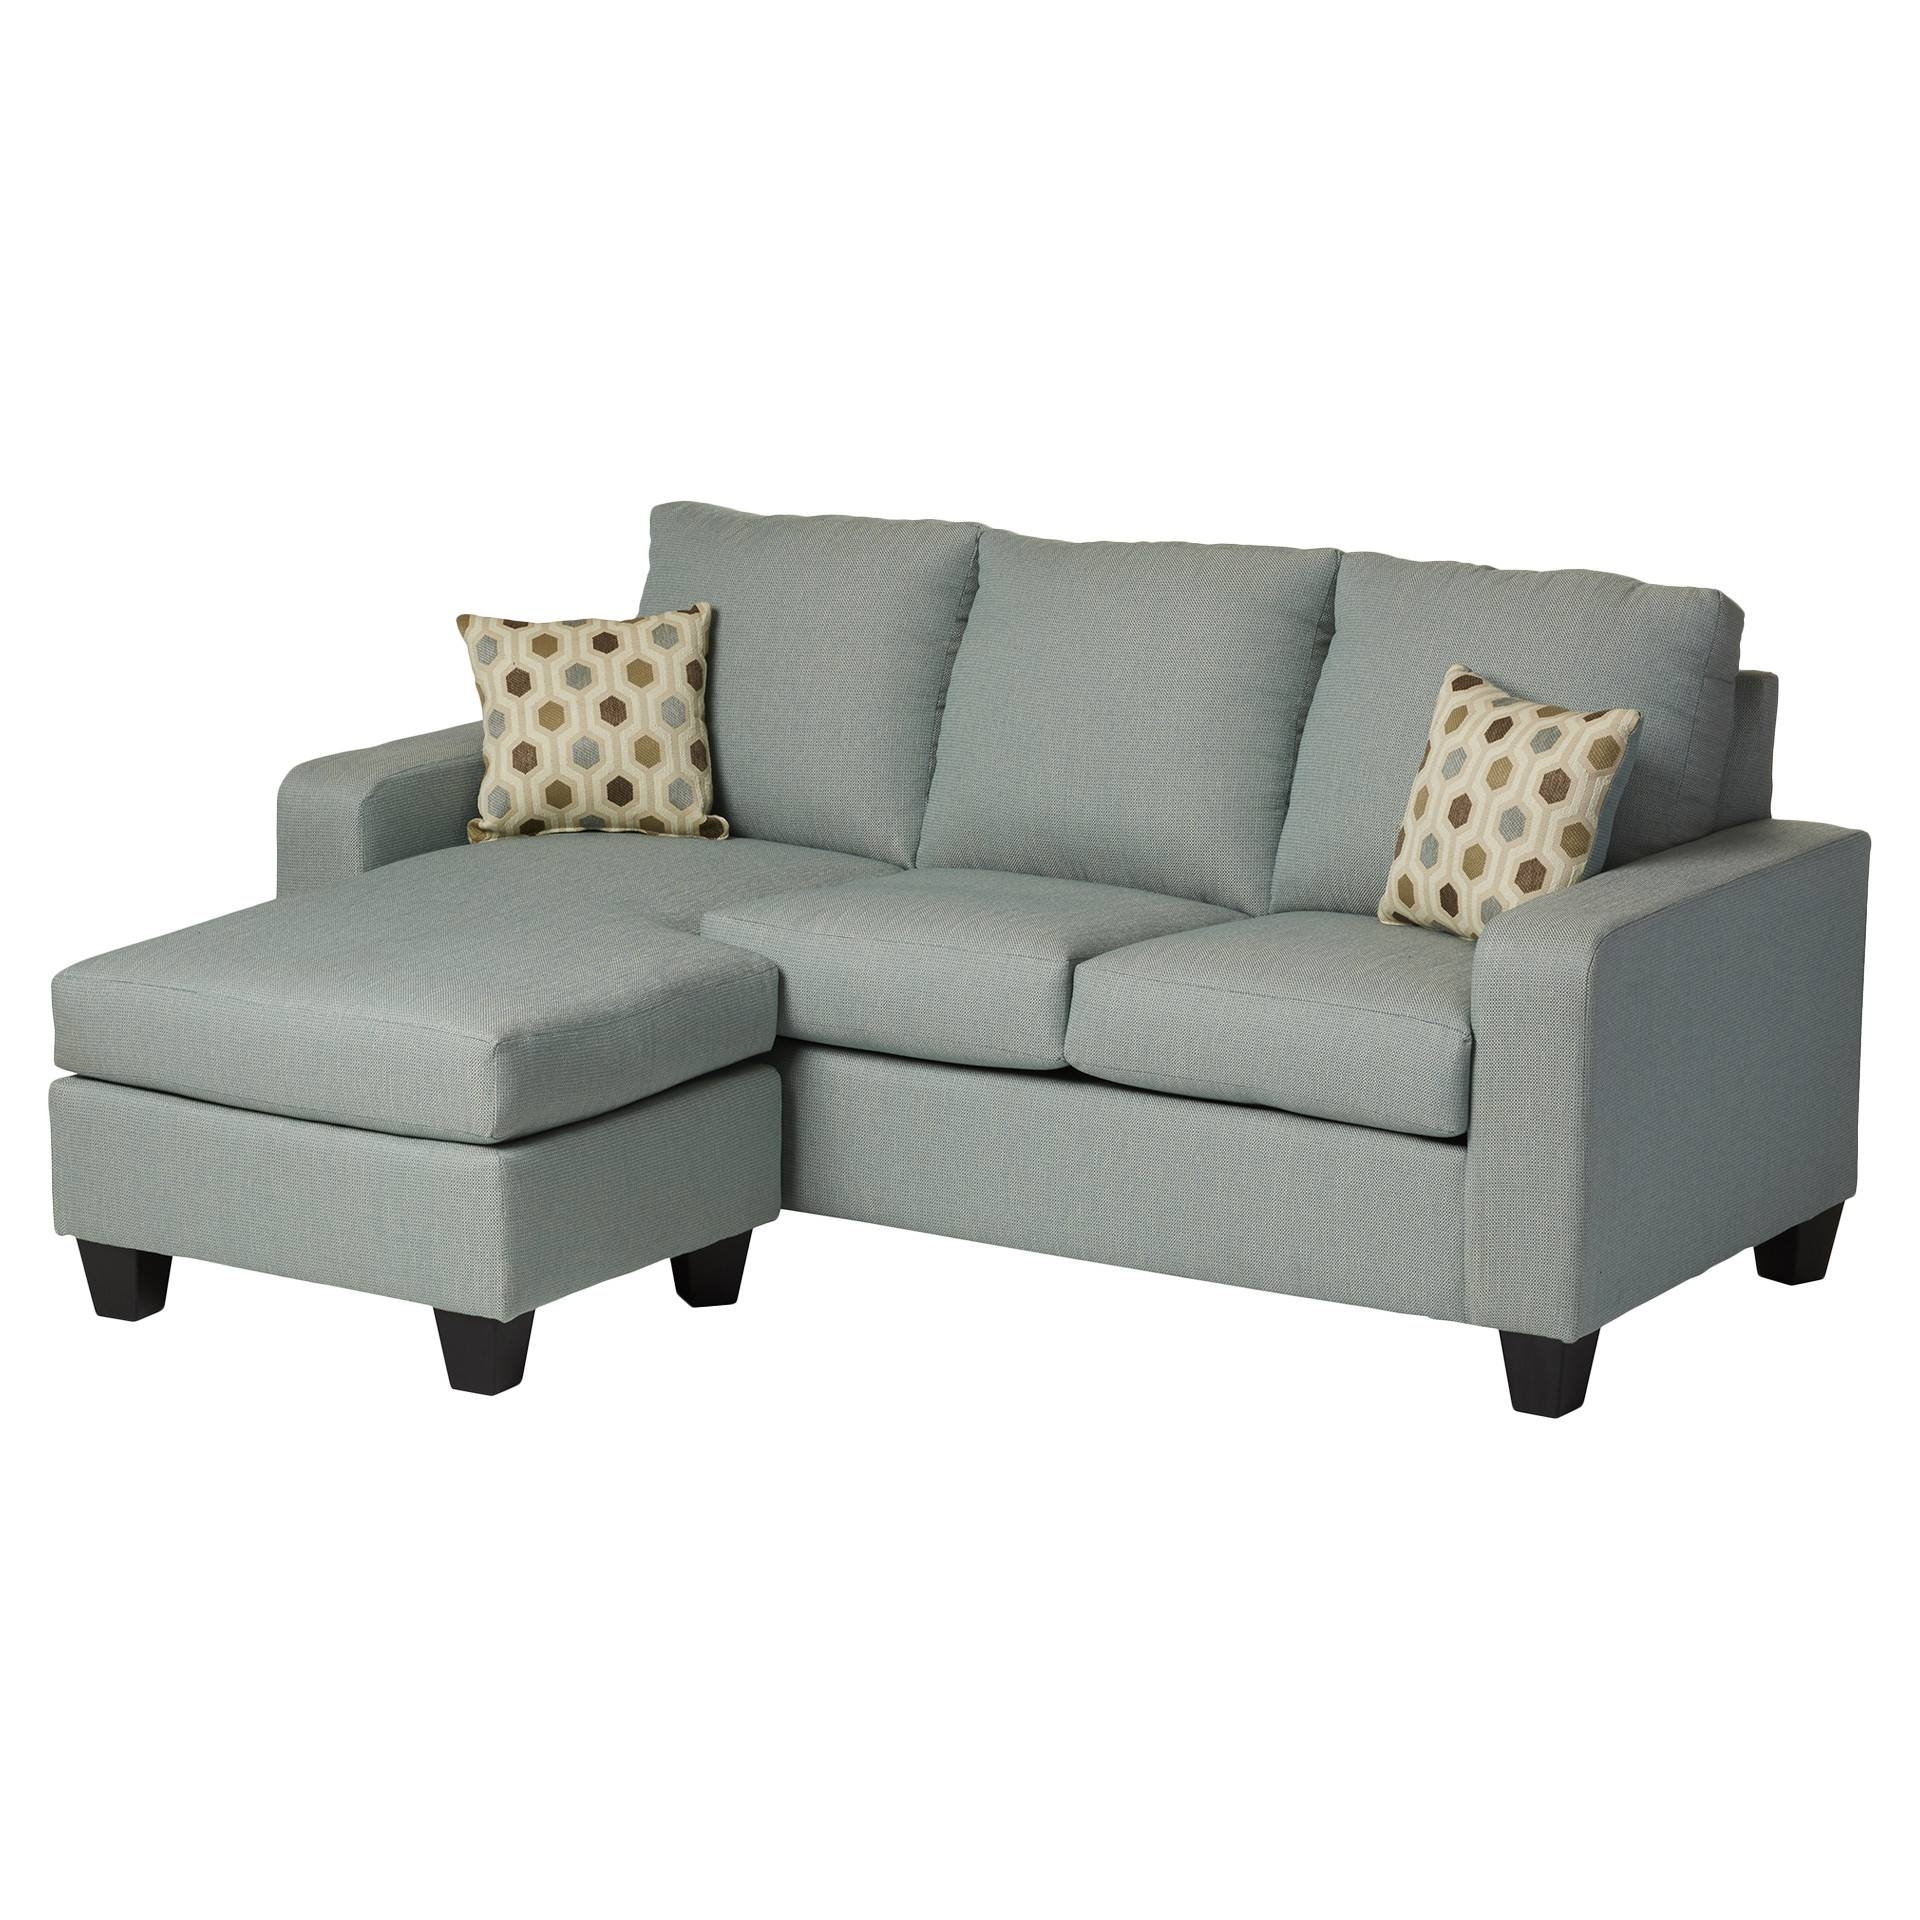 Living Room: Affordable Sectional Sofas | Cheap Sofas And pertaining to Sofas Cheap Prices (Image 11 of 30)